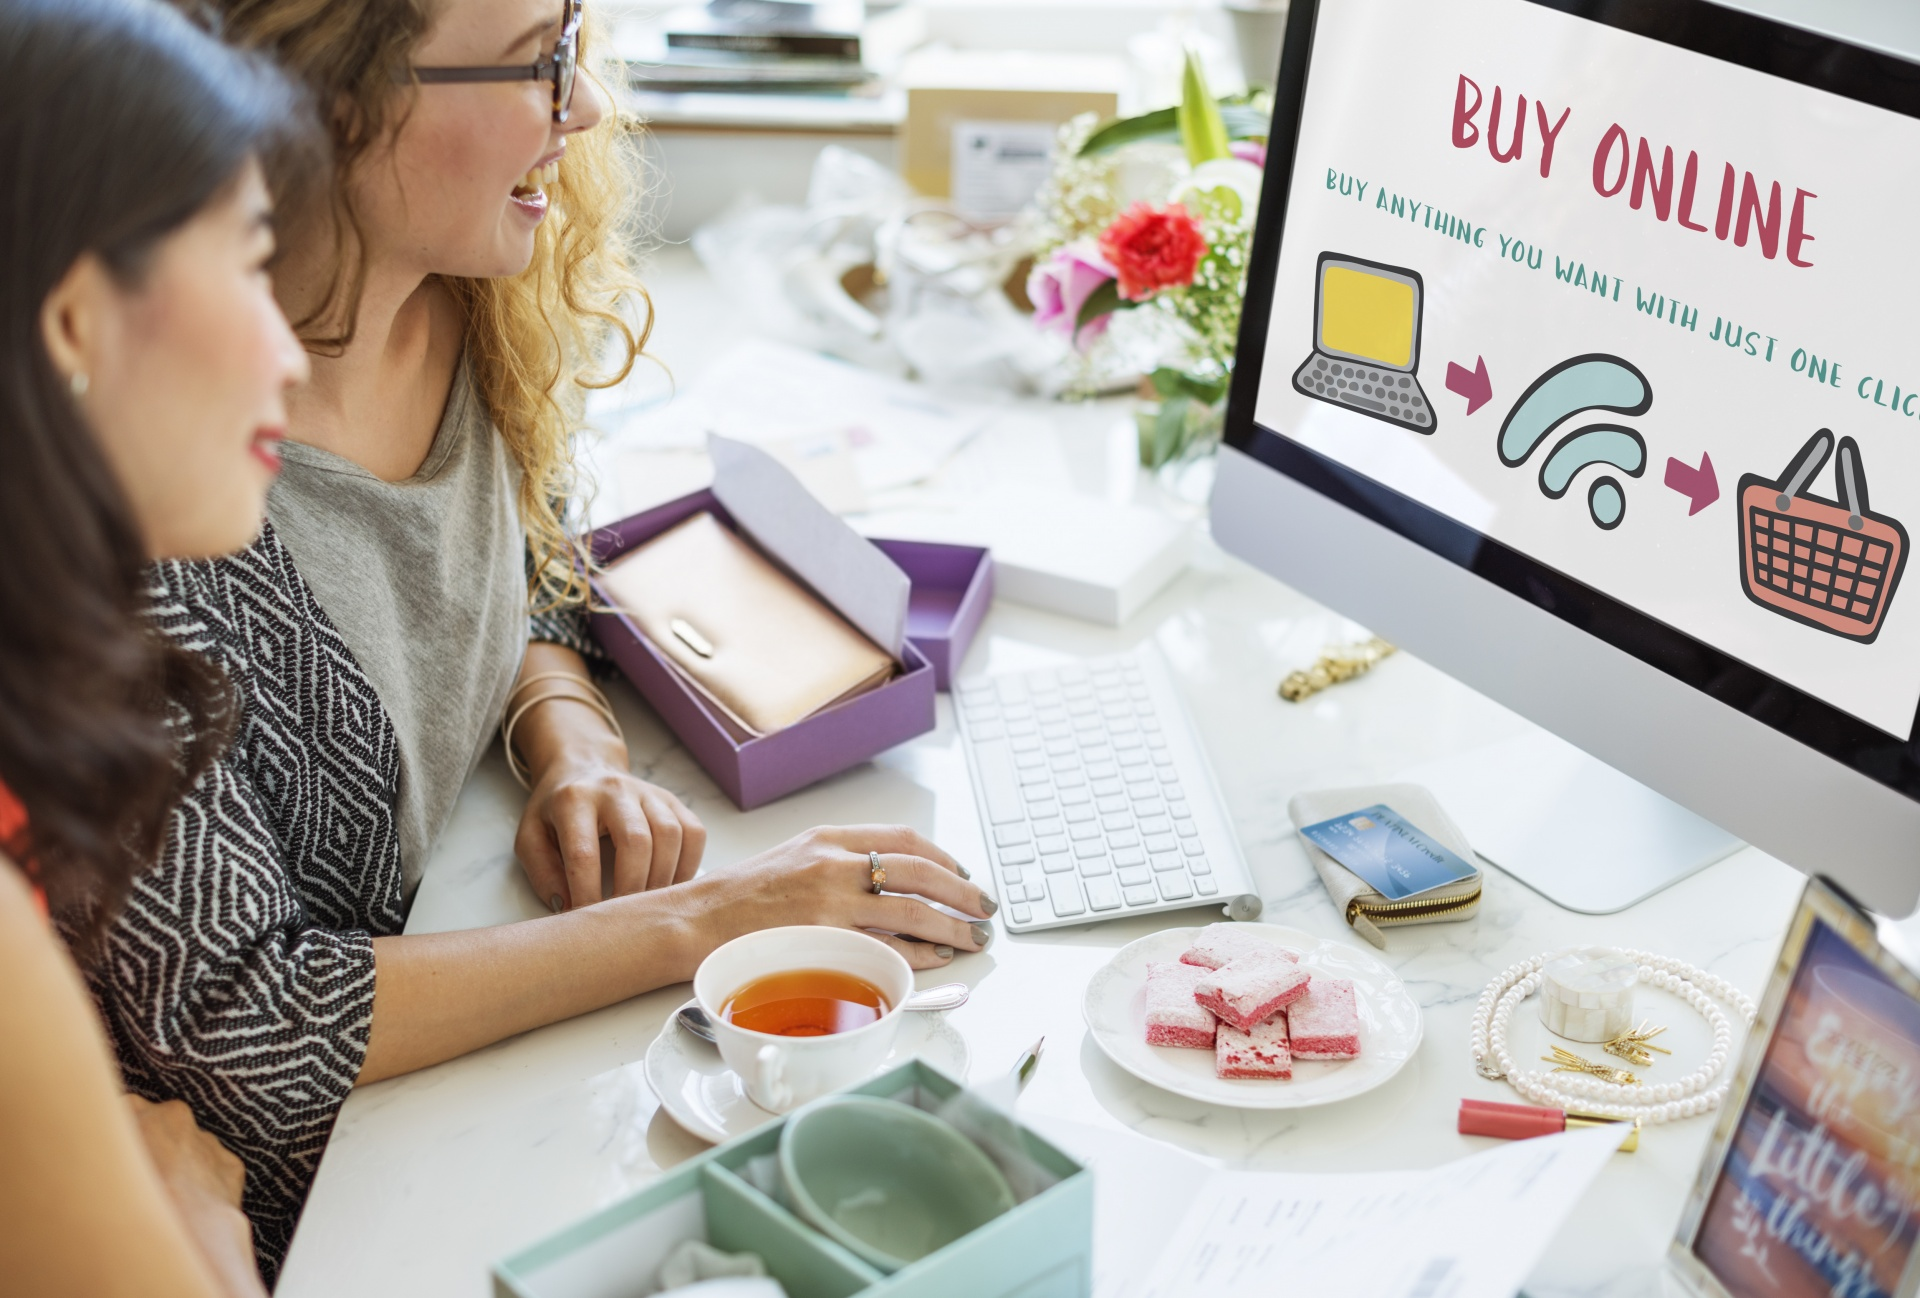 70 million people in Southeast Asia have adopted online shopping due to COVID-19